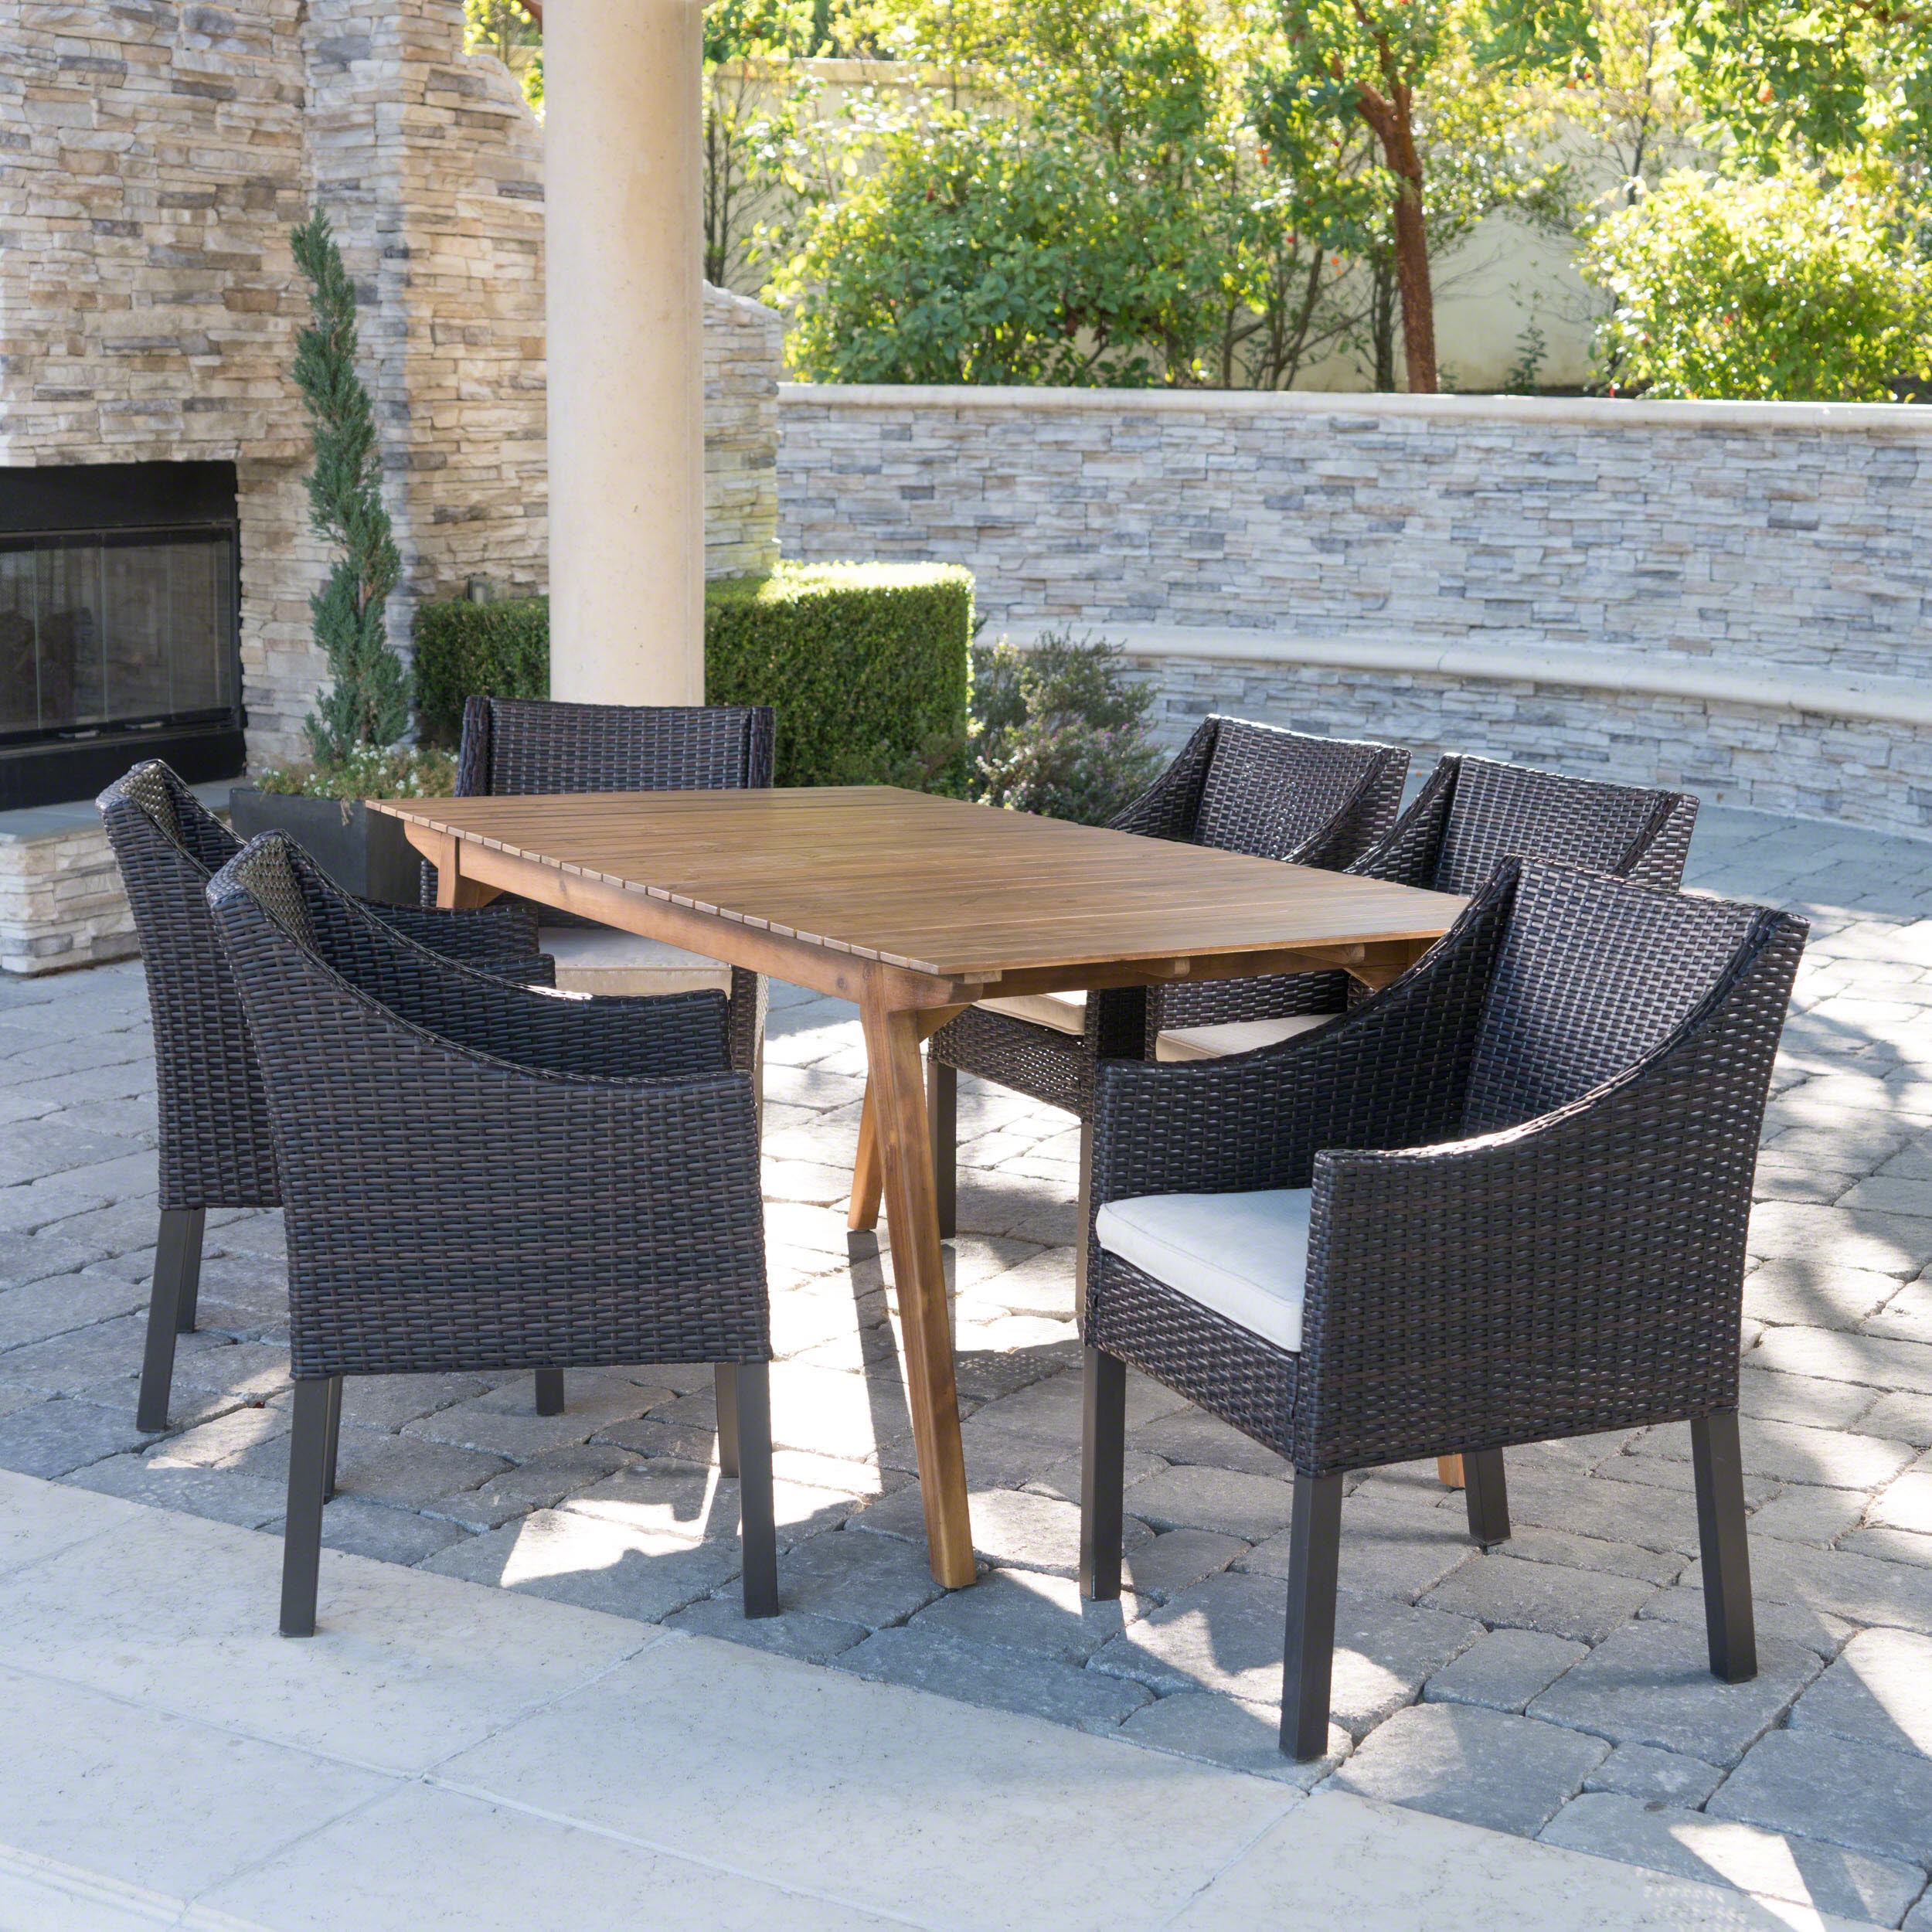 Visalia Outdoor 7 Piece Acacia Wood Rectangular Dining Set with Wicker Chairs and Water Resistant Cushions, Teak Finish